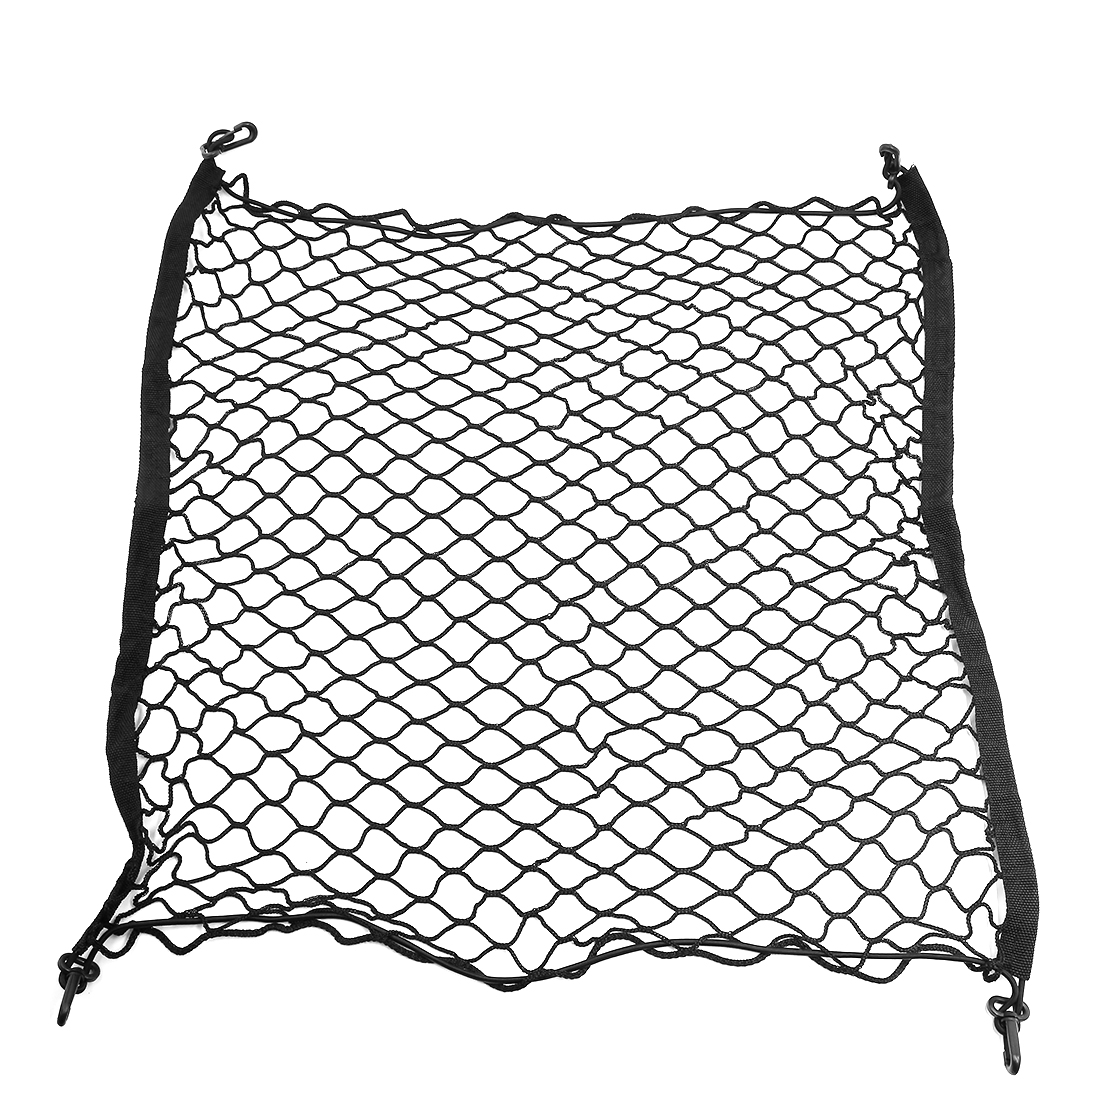 4 Hook Dual Layer Car Rear Trunk Cargo Luggage Elastic Mesh Net 83cm x 69cm